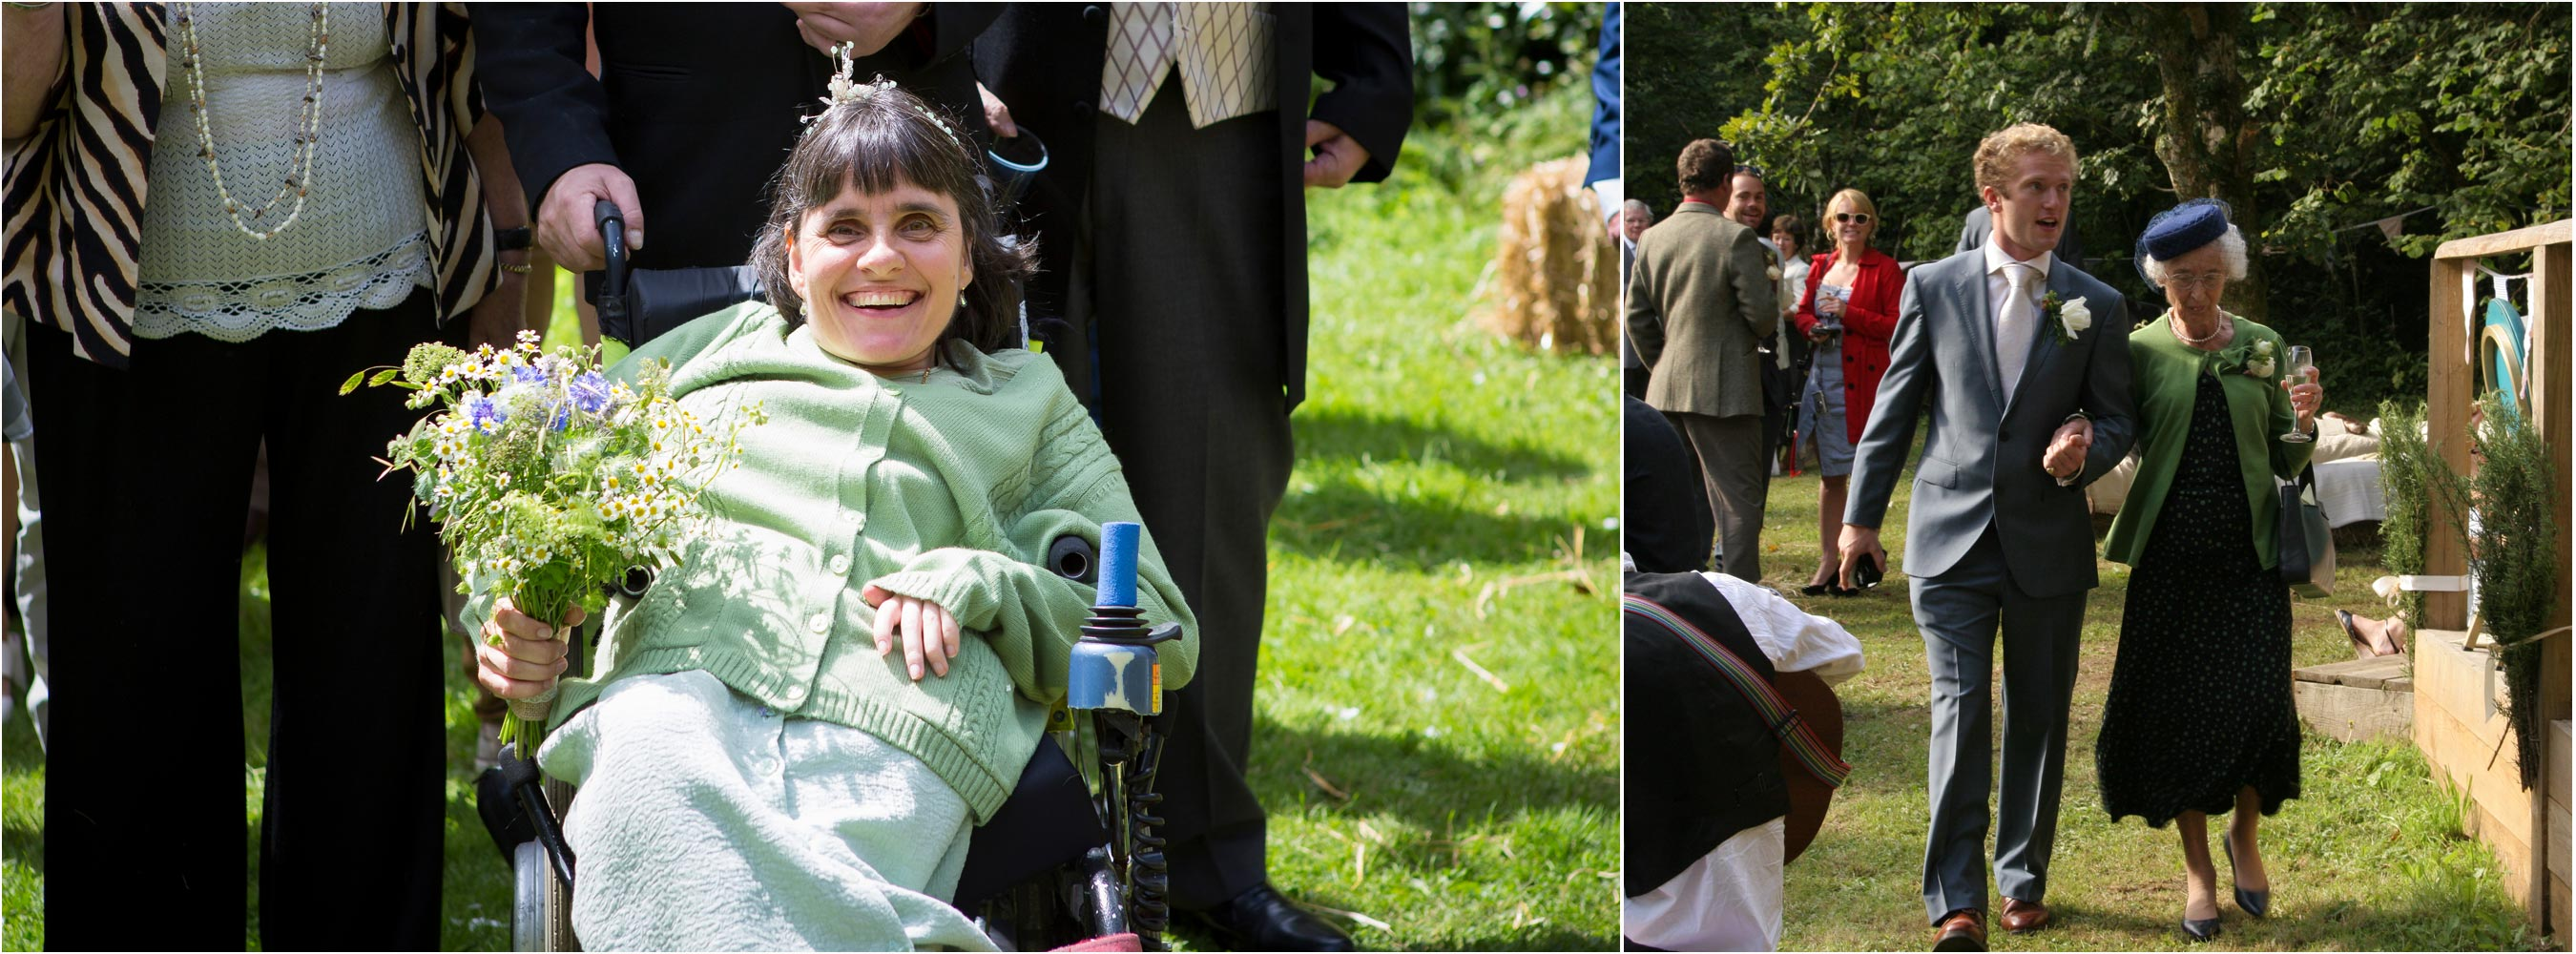 Wheelchair Happy Bridesmaid Jolly Green Granny